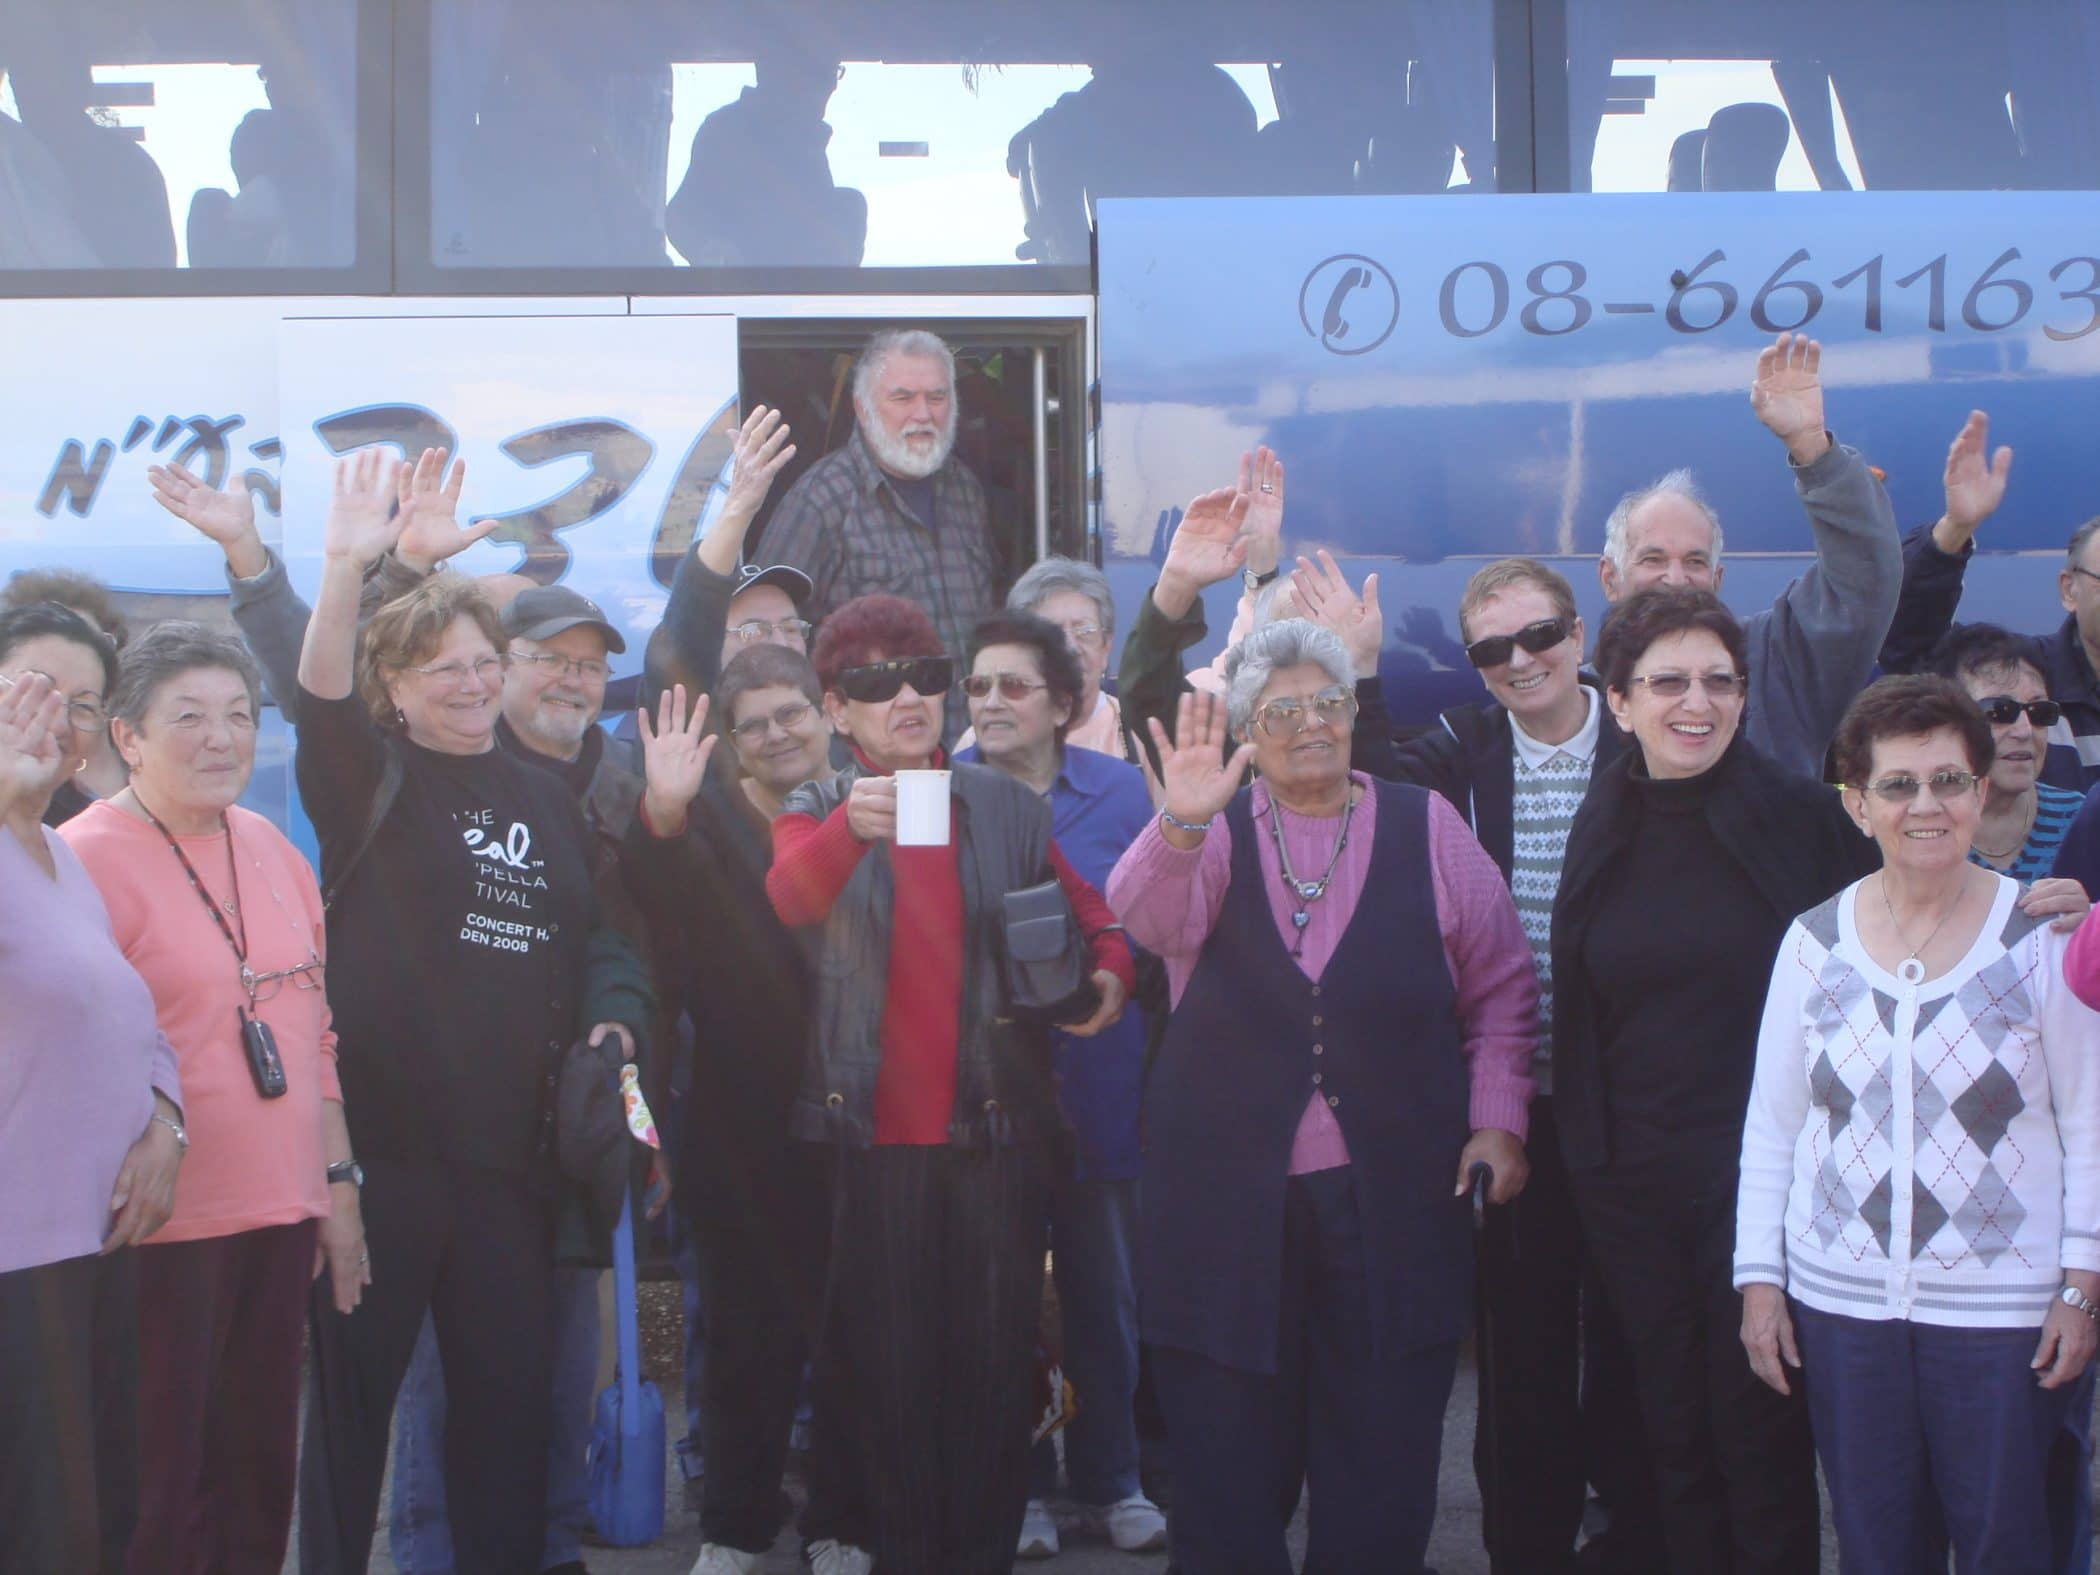 Desptie the smiles and waves, this community of famers living just outside the Gaza Strip are fleeing a war zone.